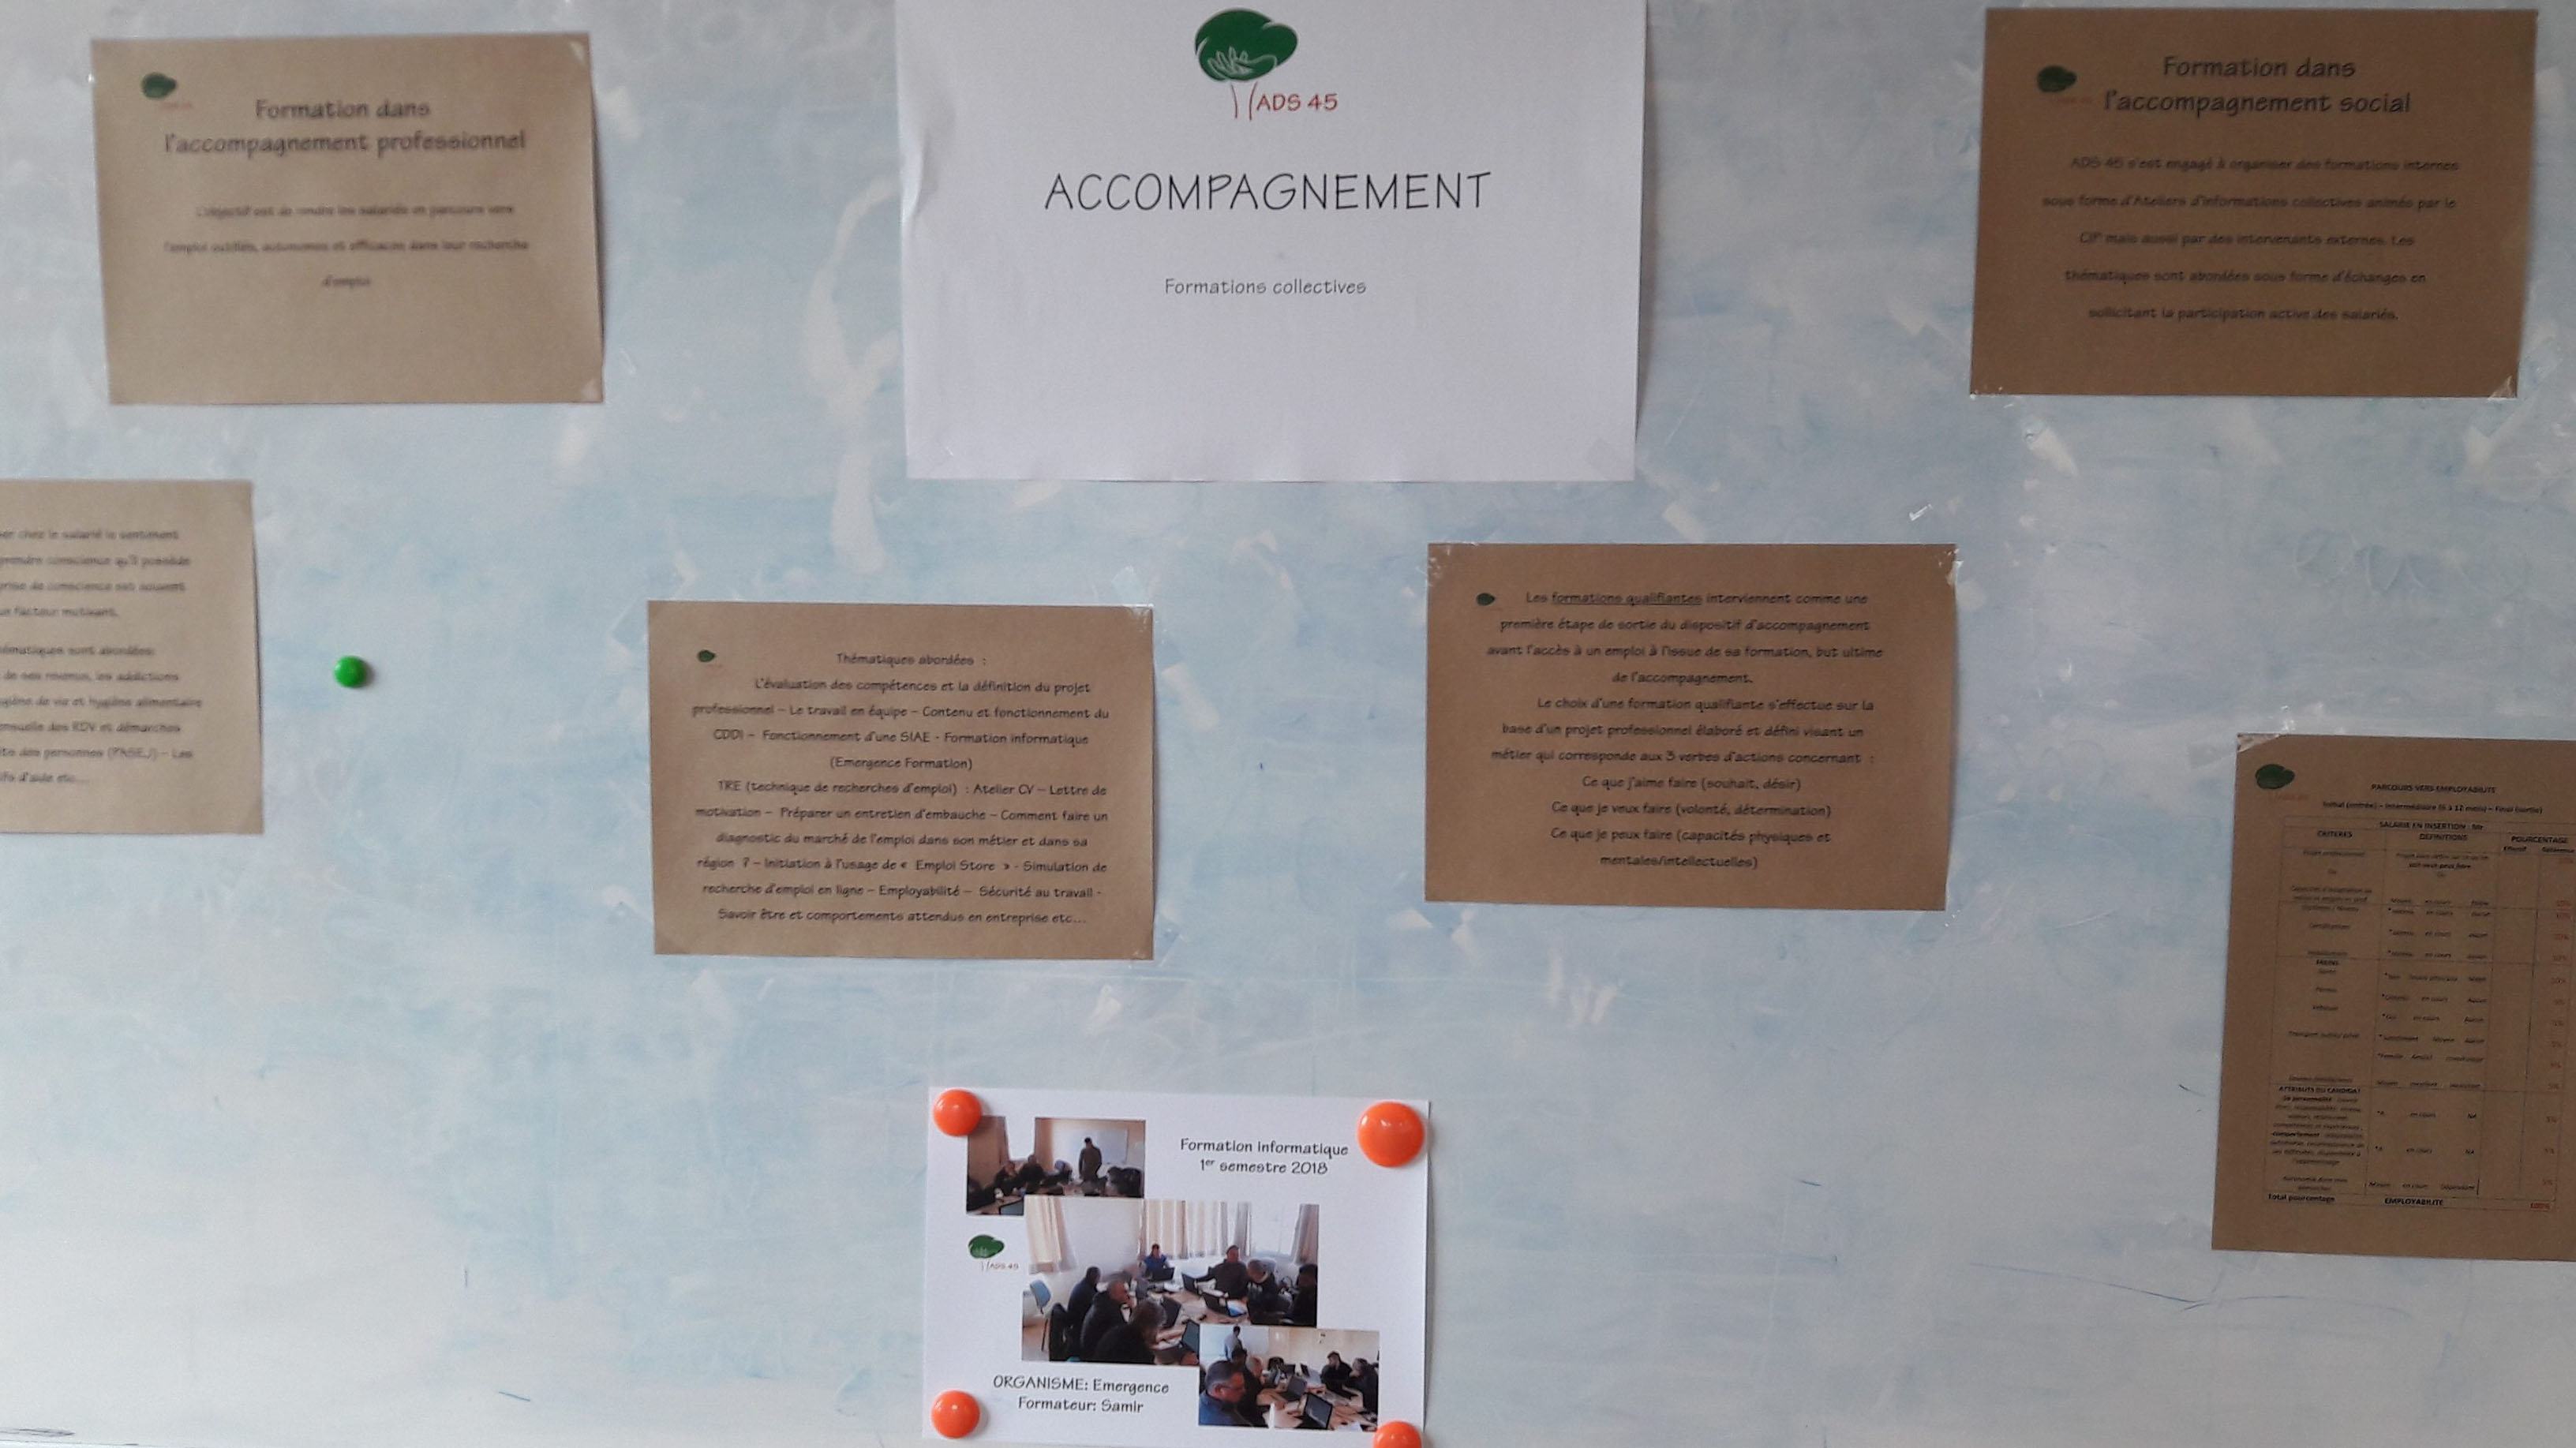 accompagnement - formation 3